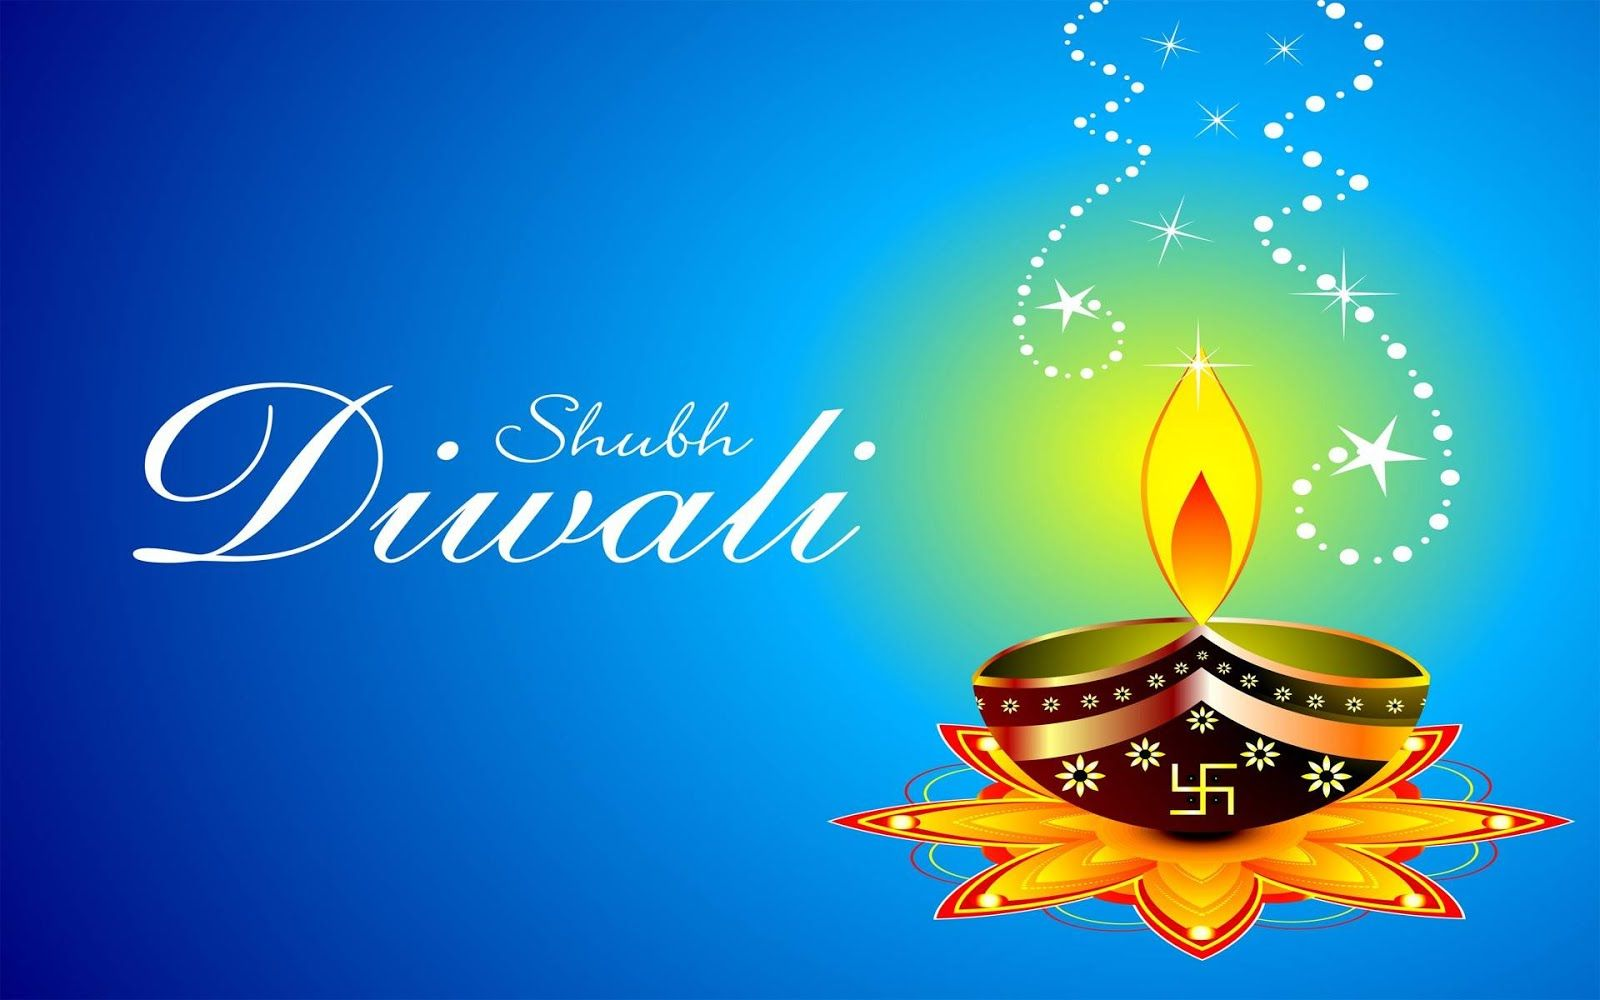 Happy diwali images wallpapers pictures photos pics greetings happy diwali 2015 wishes picture messages wallpapers quotes and greetings happy diwali wallpapers 2015 kristyandbryce Images